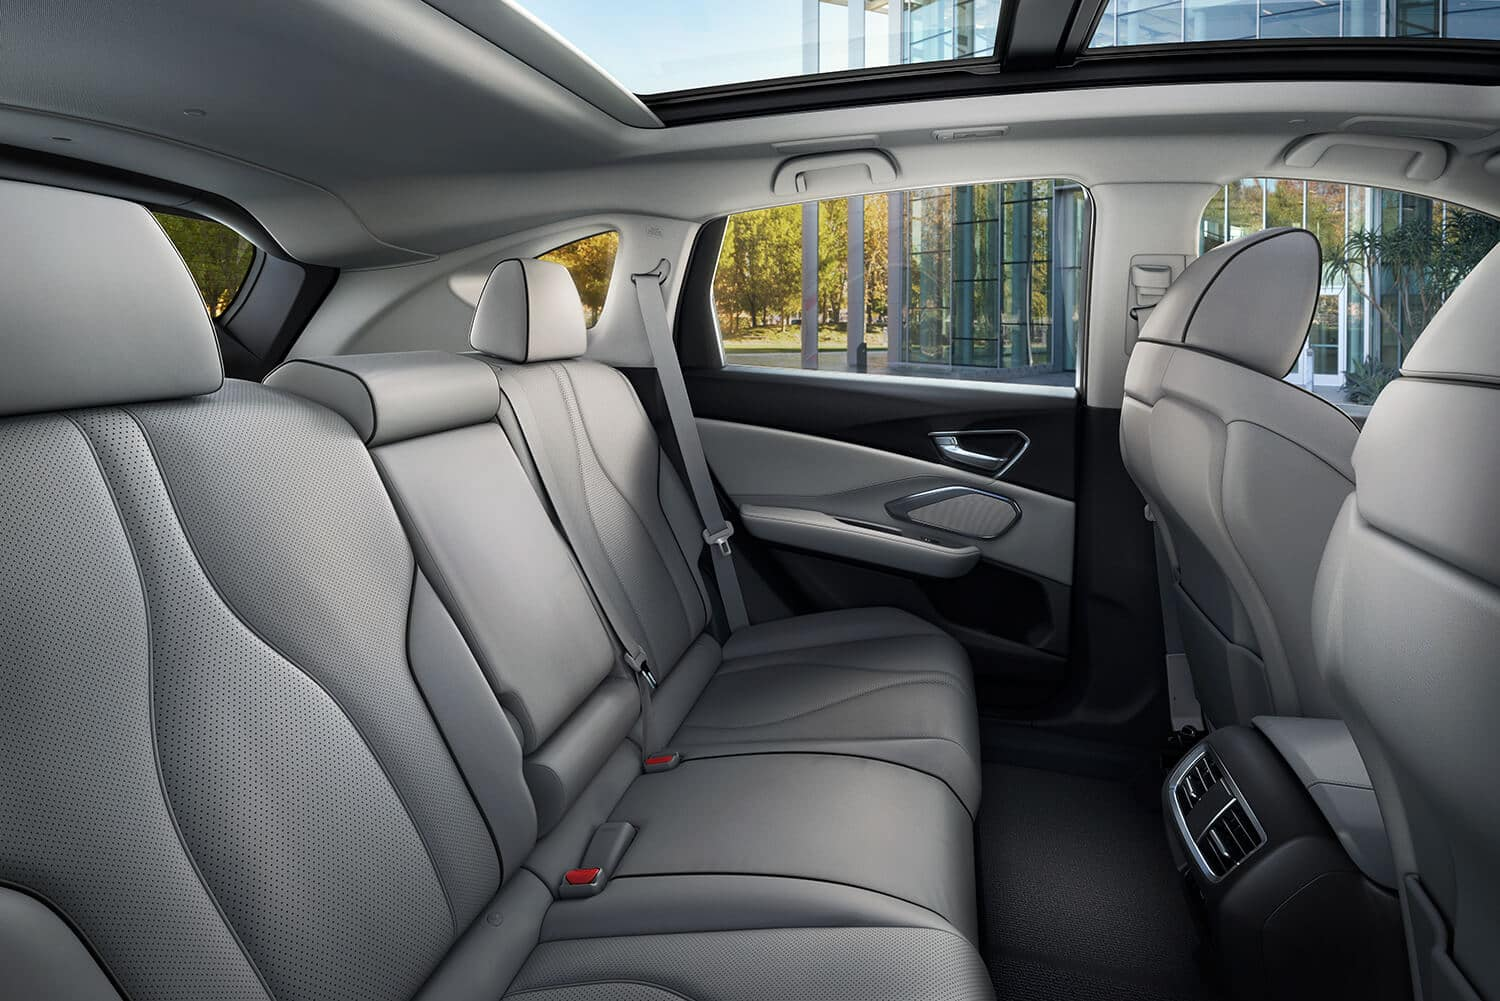 2019 Acura RDX Interior Rear Seating